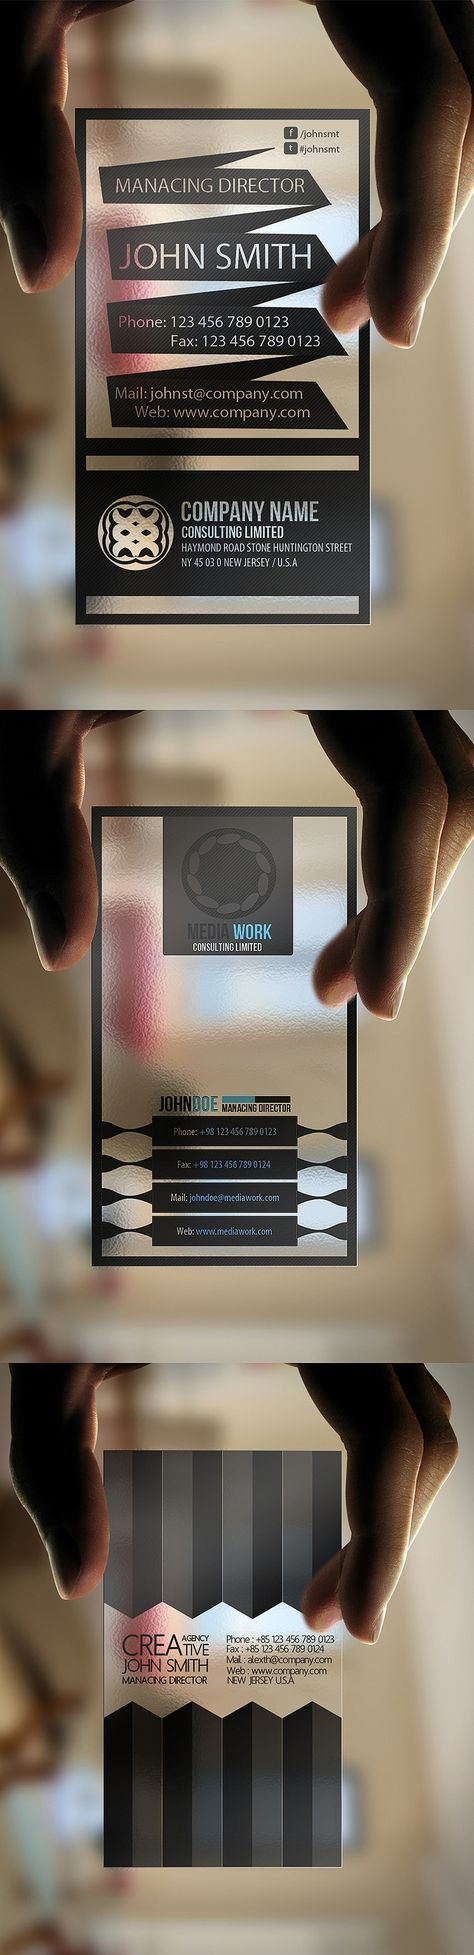 27 best business card inspiration images on pinterest creative want to learn how to create amazing business cards download for free the complete reheart Choice Image